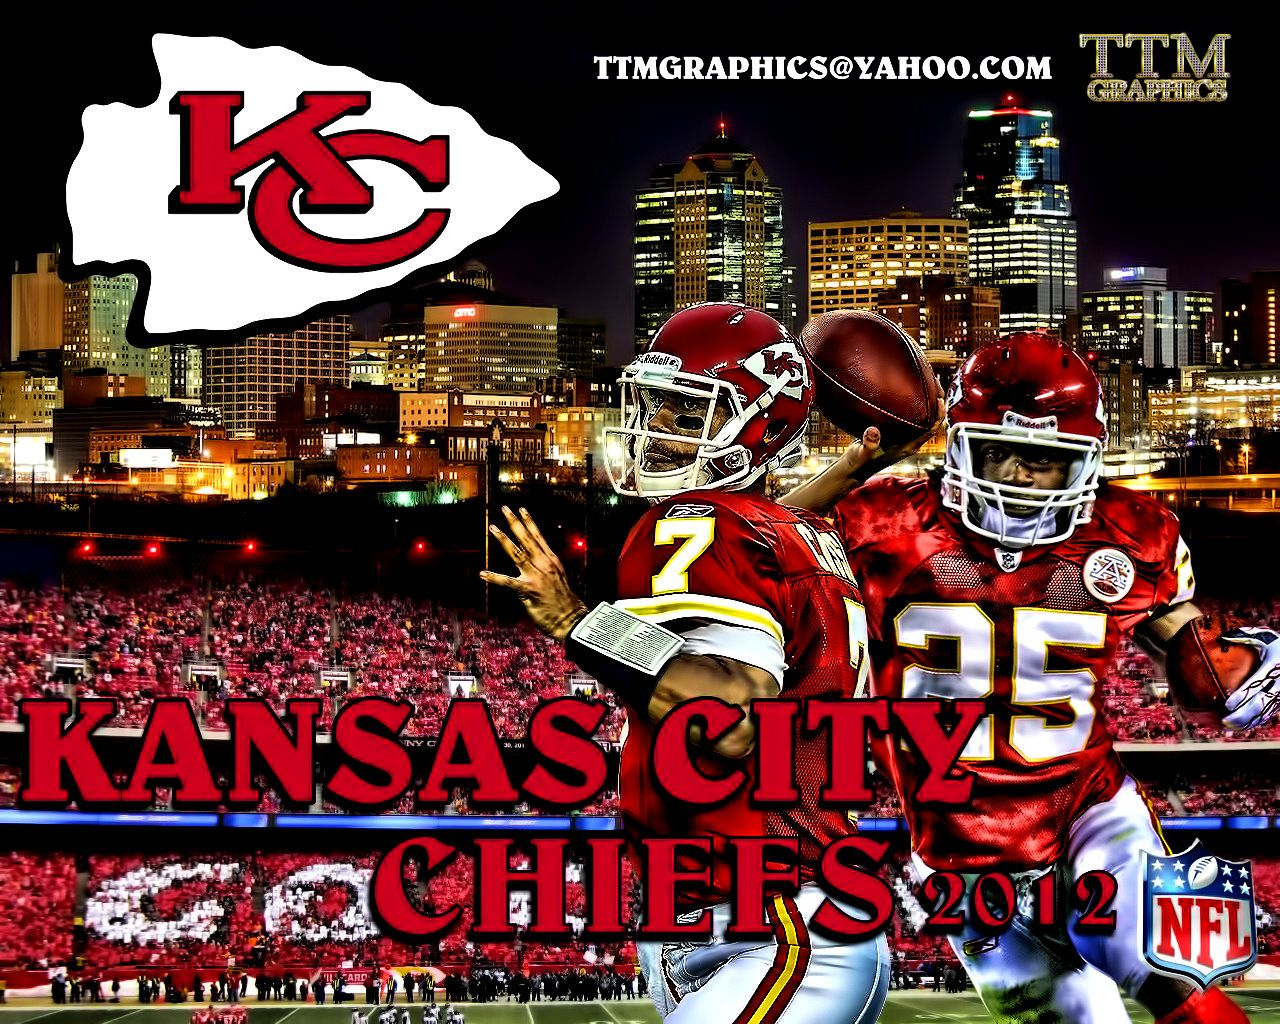 Kansas City Chiefs Backgrounds Kansas City Chiefs Wallpaper Hd Desktop Wallpaper Kansas City Chiefs Kansas City Chiefs Chiefs Wallpaper Kansas City